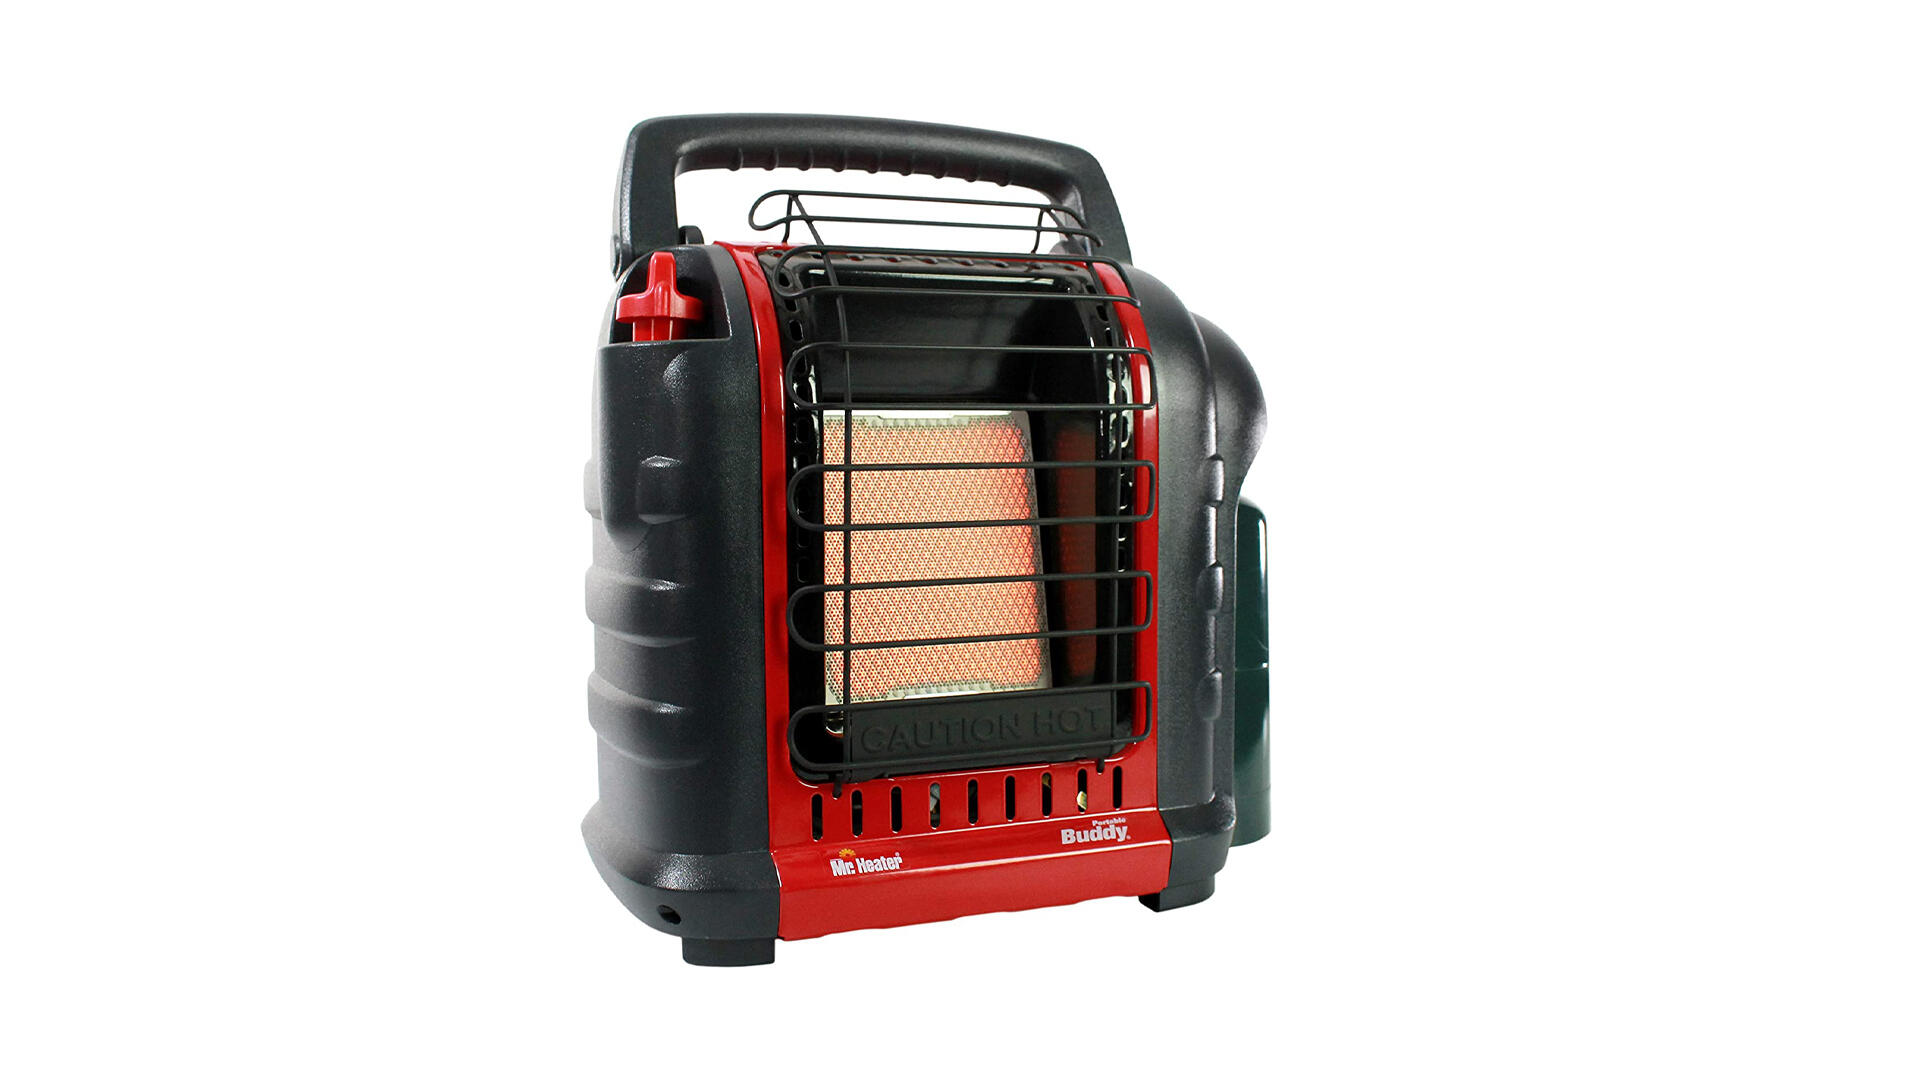 mr heater | Best garage heaters for 2021 | The Paradise